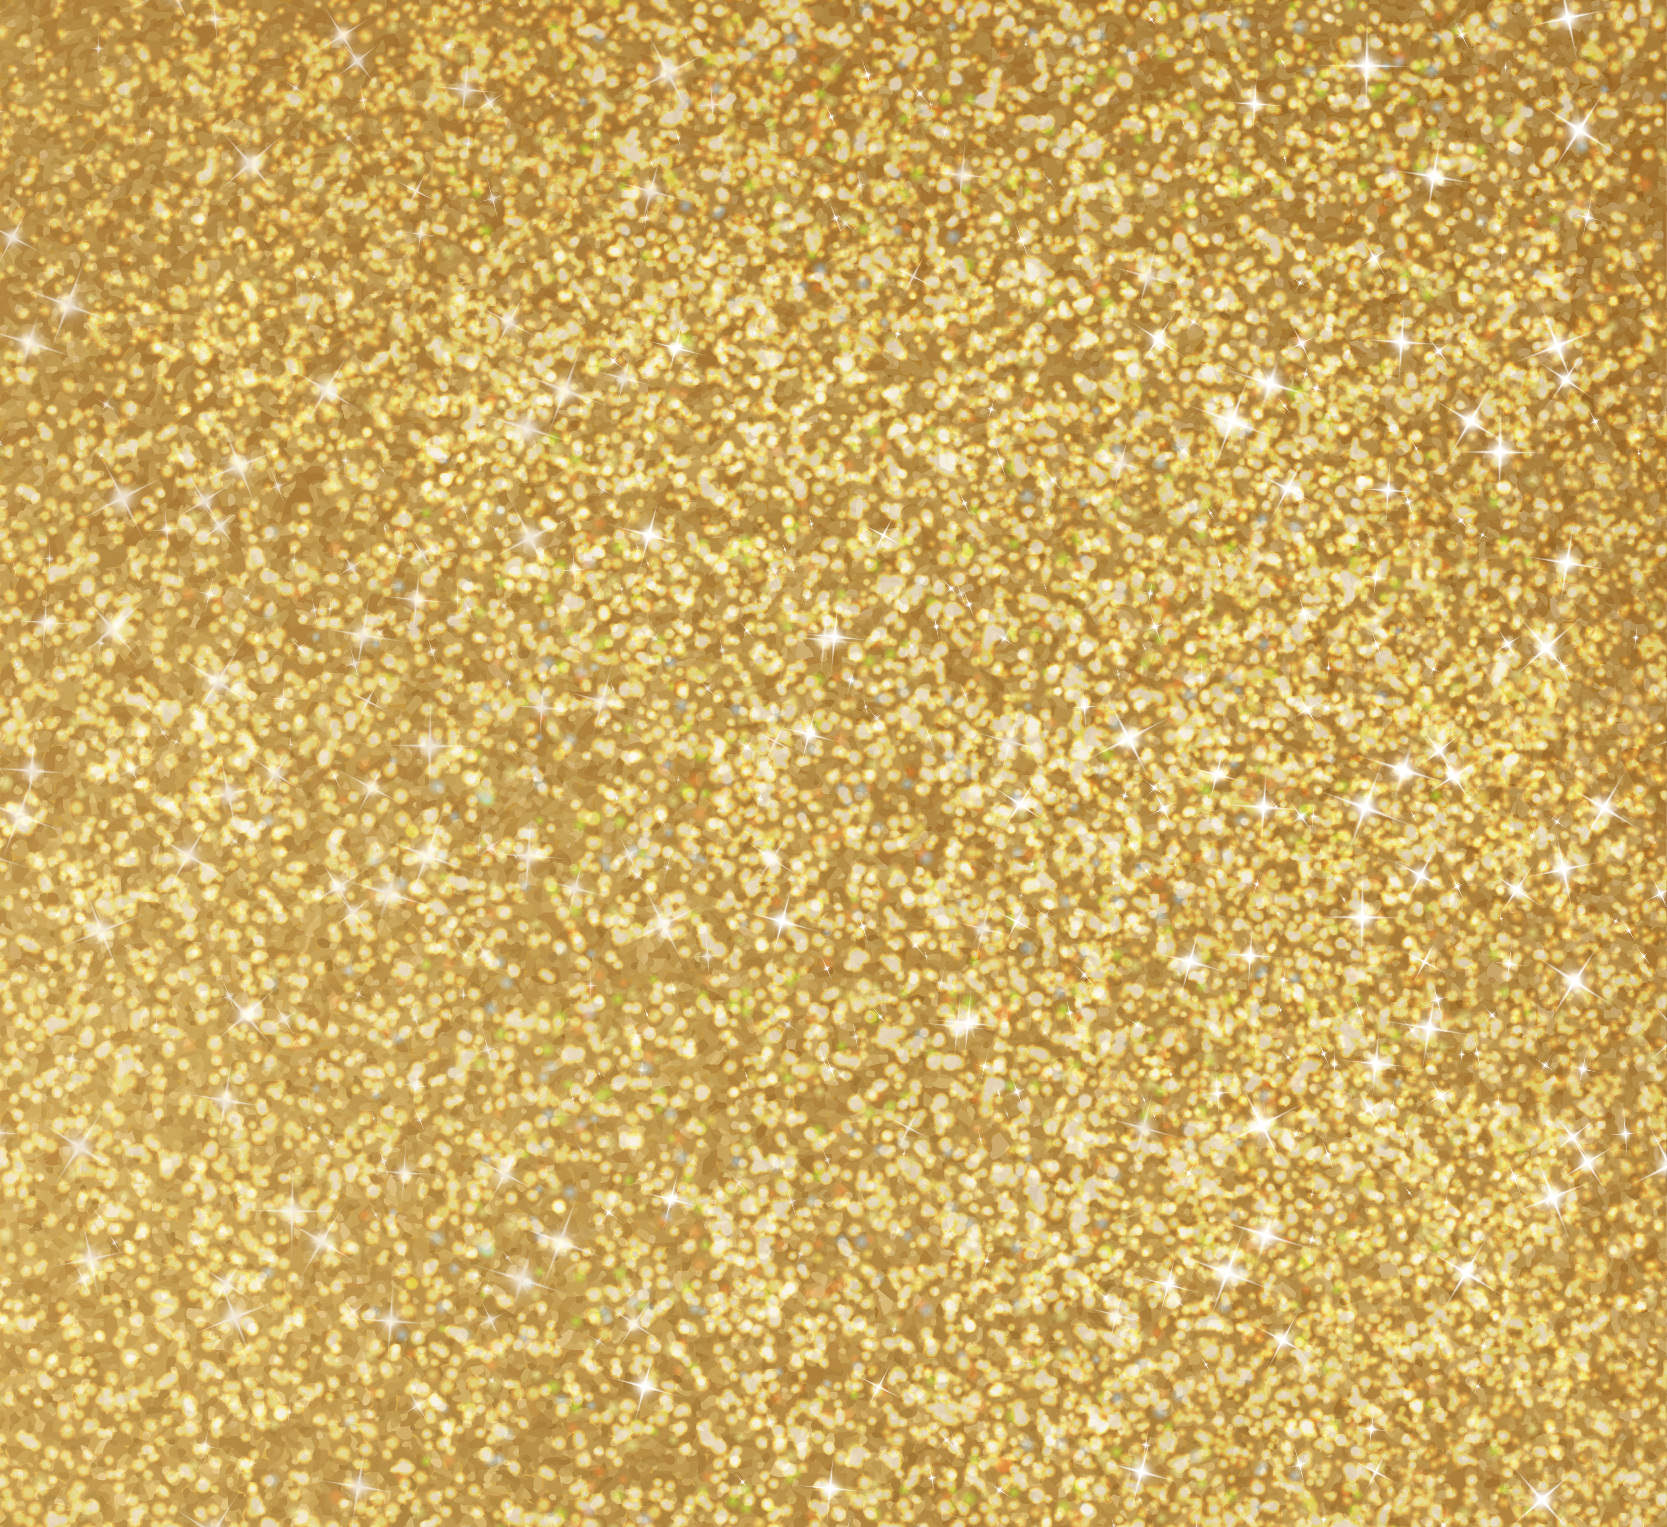 Glitter Gold: 20+ Gold Glitter Backgrounds